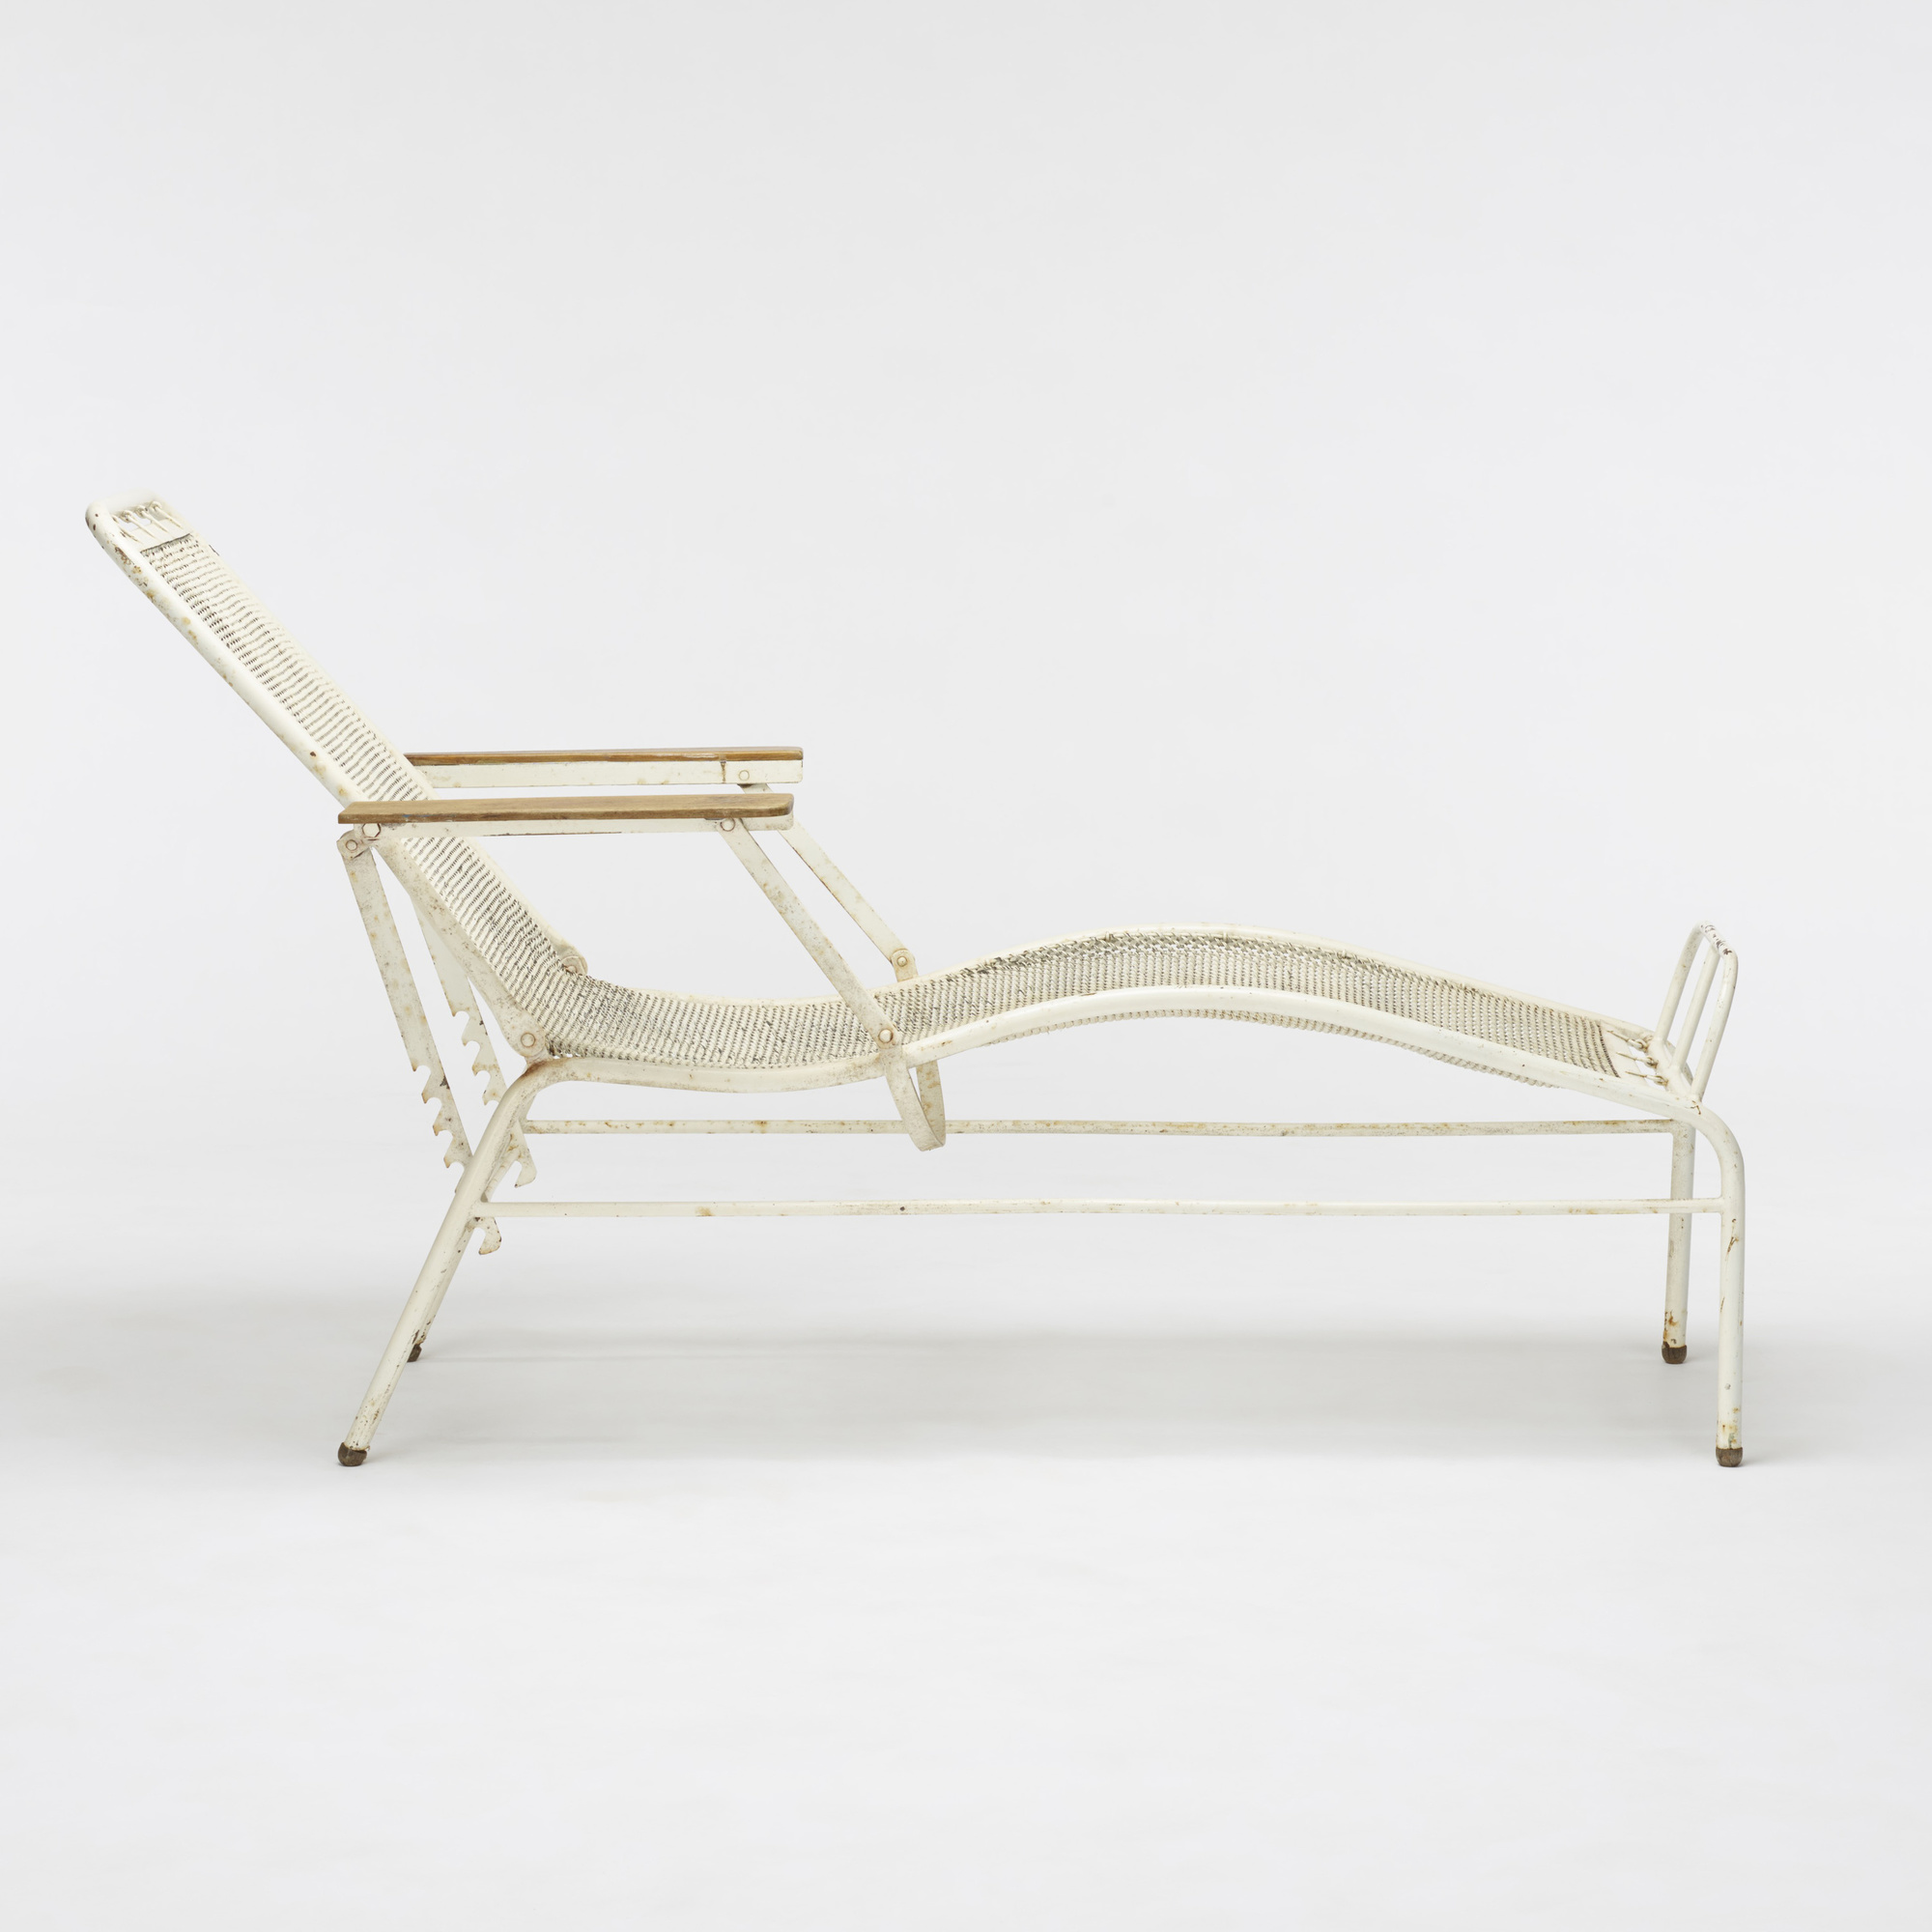 182 Jean Prouv And Jules Leleu Chaise Lounge From The Martel De Janville Sanatorium